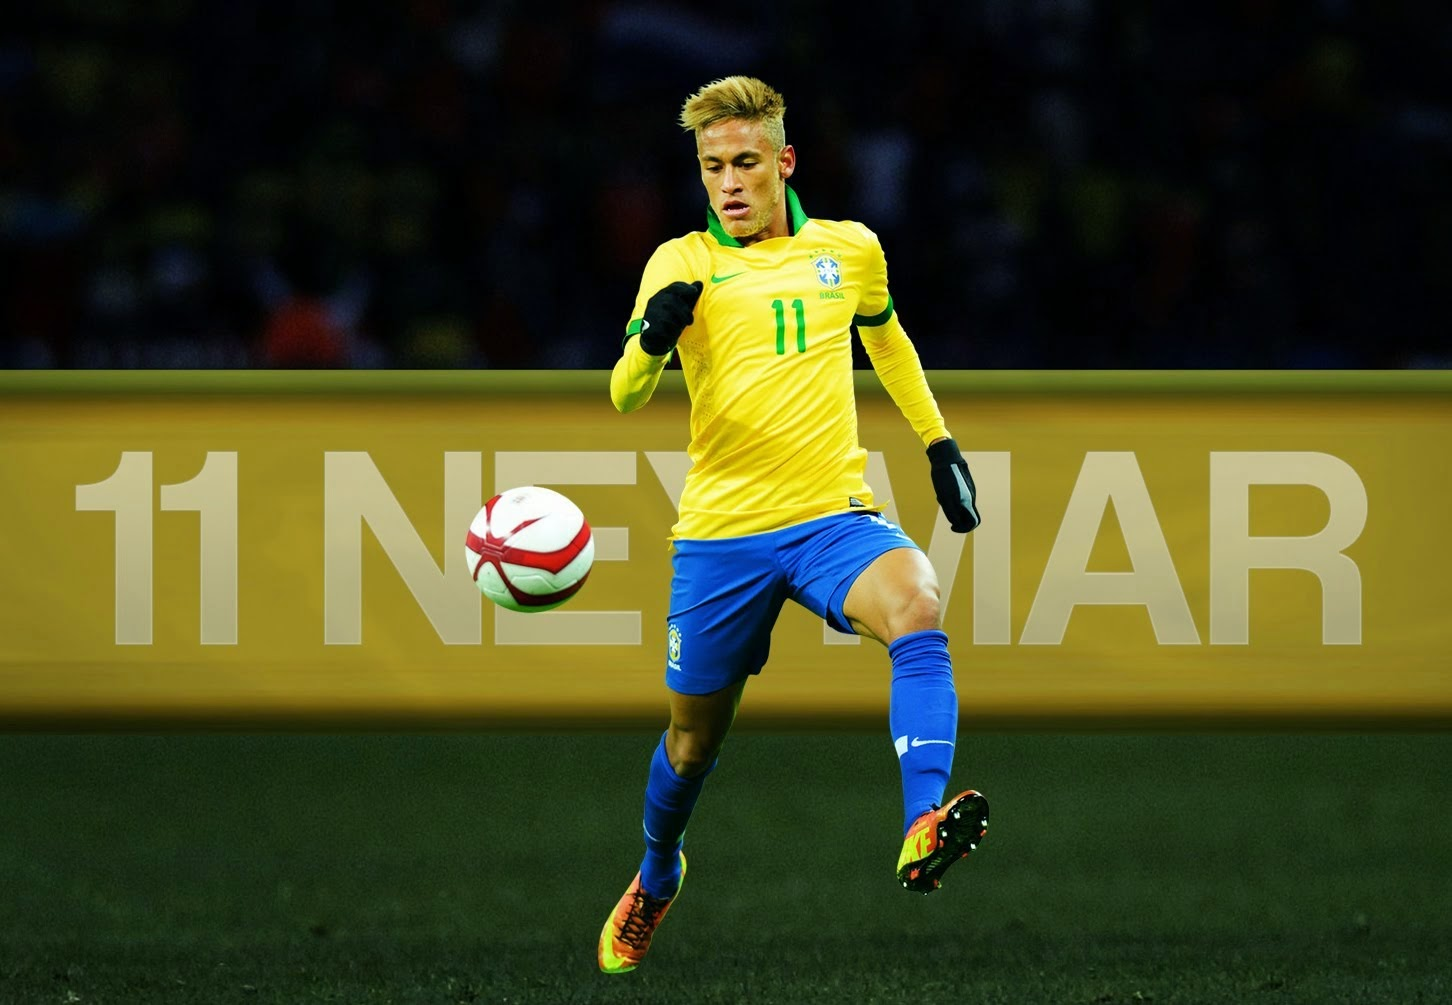 Neymar Football Soccer Player Hd Free Kick Ball To Goal Mobile Desktop Bakground Download Photos